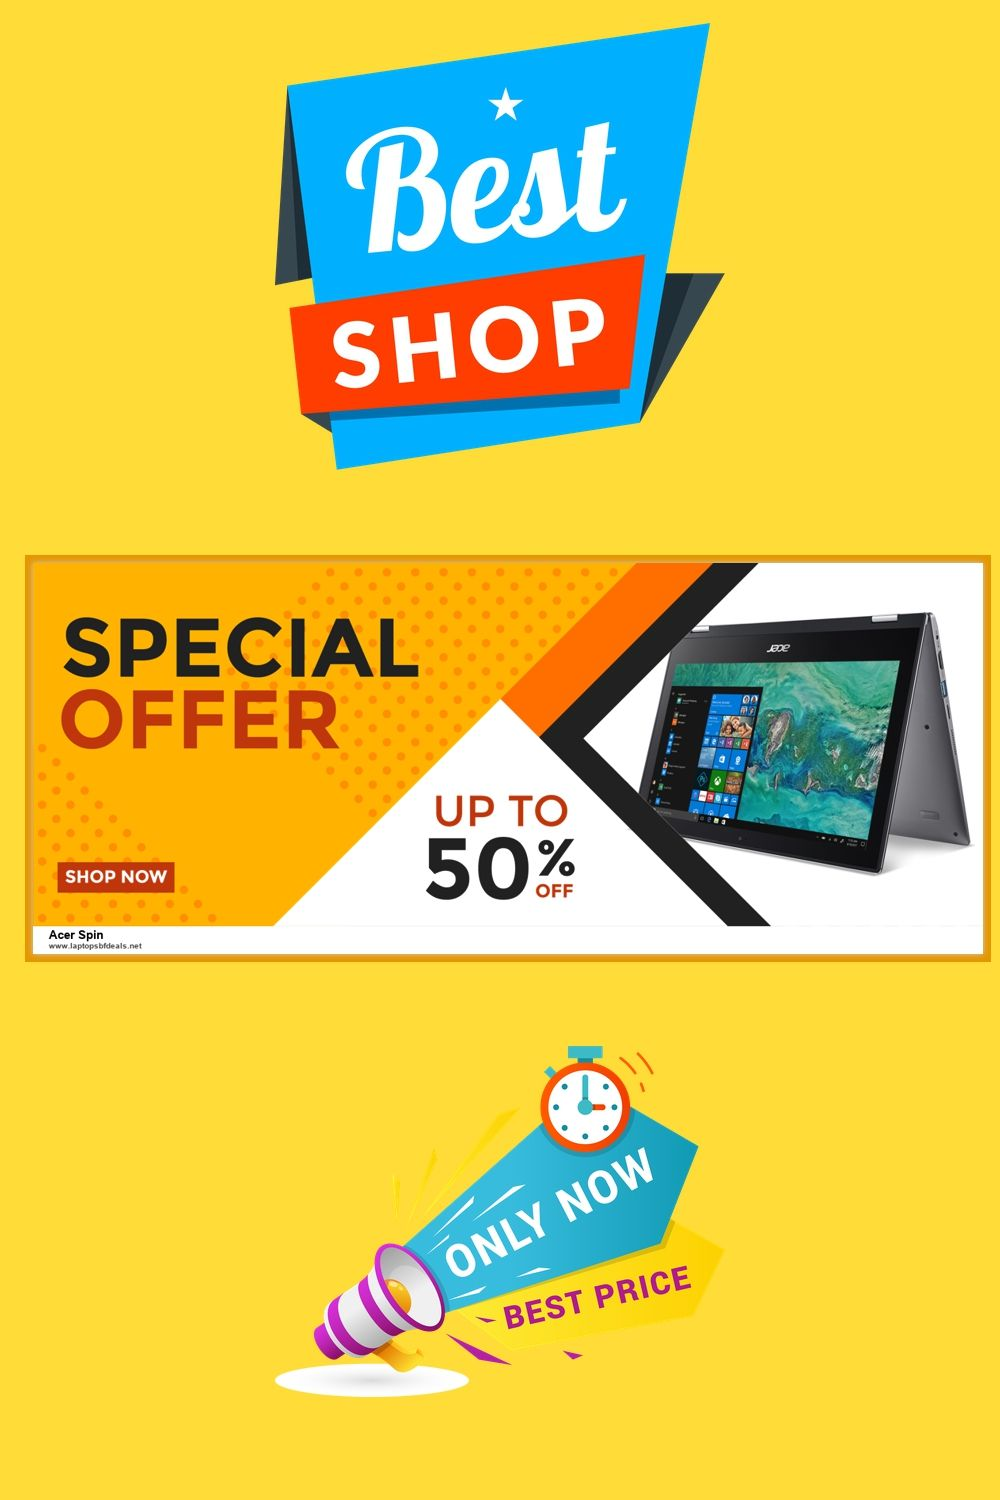 9 Best Acer Spin Black Friday Deals Offers 2020 In 2020 Black Friday Cyber Monday Deals Cyber Monday